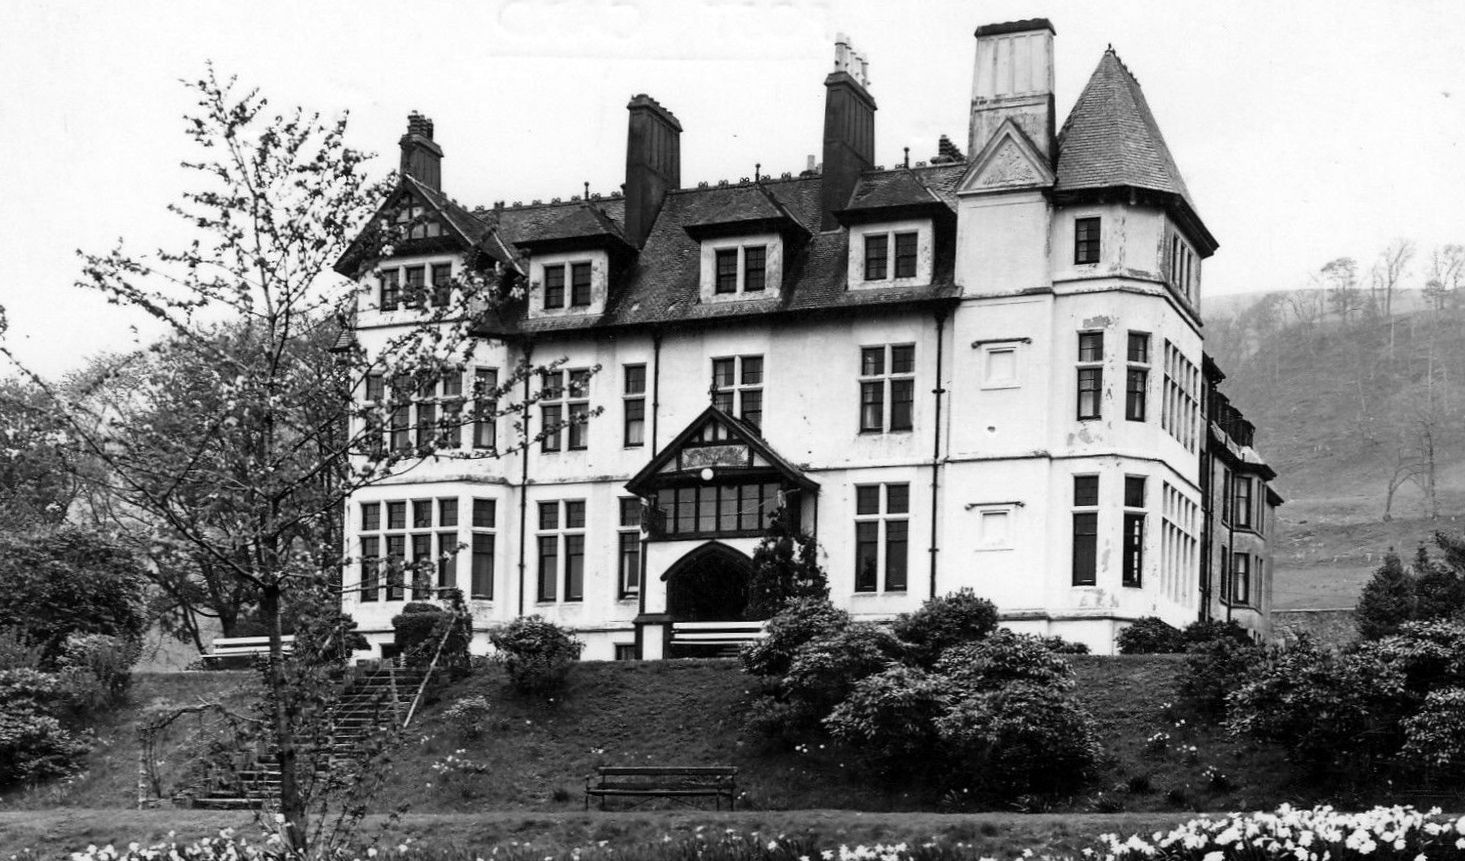 Old Travel Blog Photograph Of The Hills Hotel In Largs Ayrshire Scotland From Its Beginnings As A Small Village Around Kirk Evolved Into